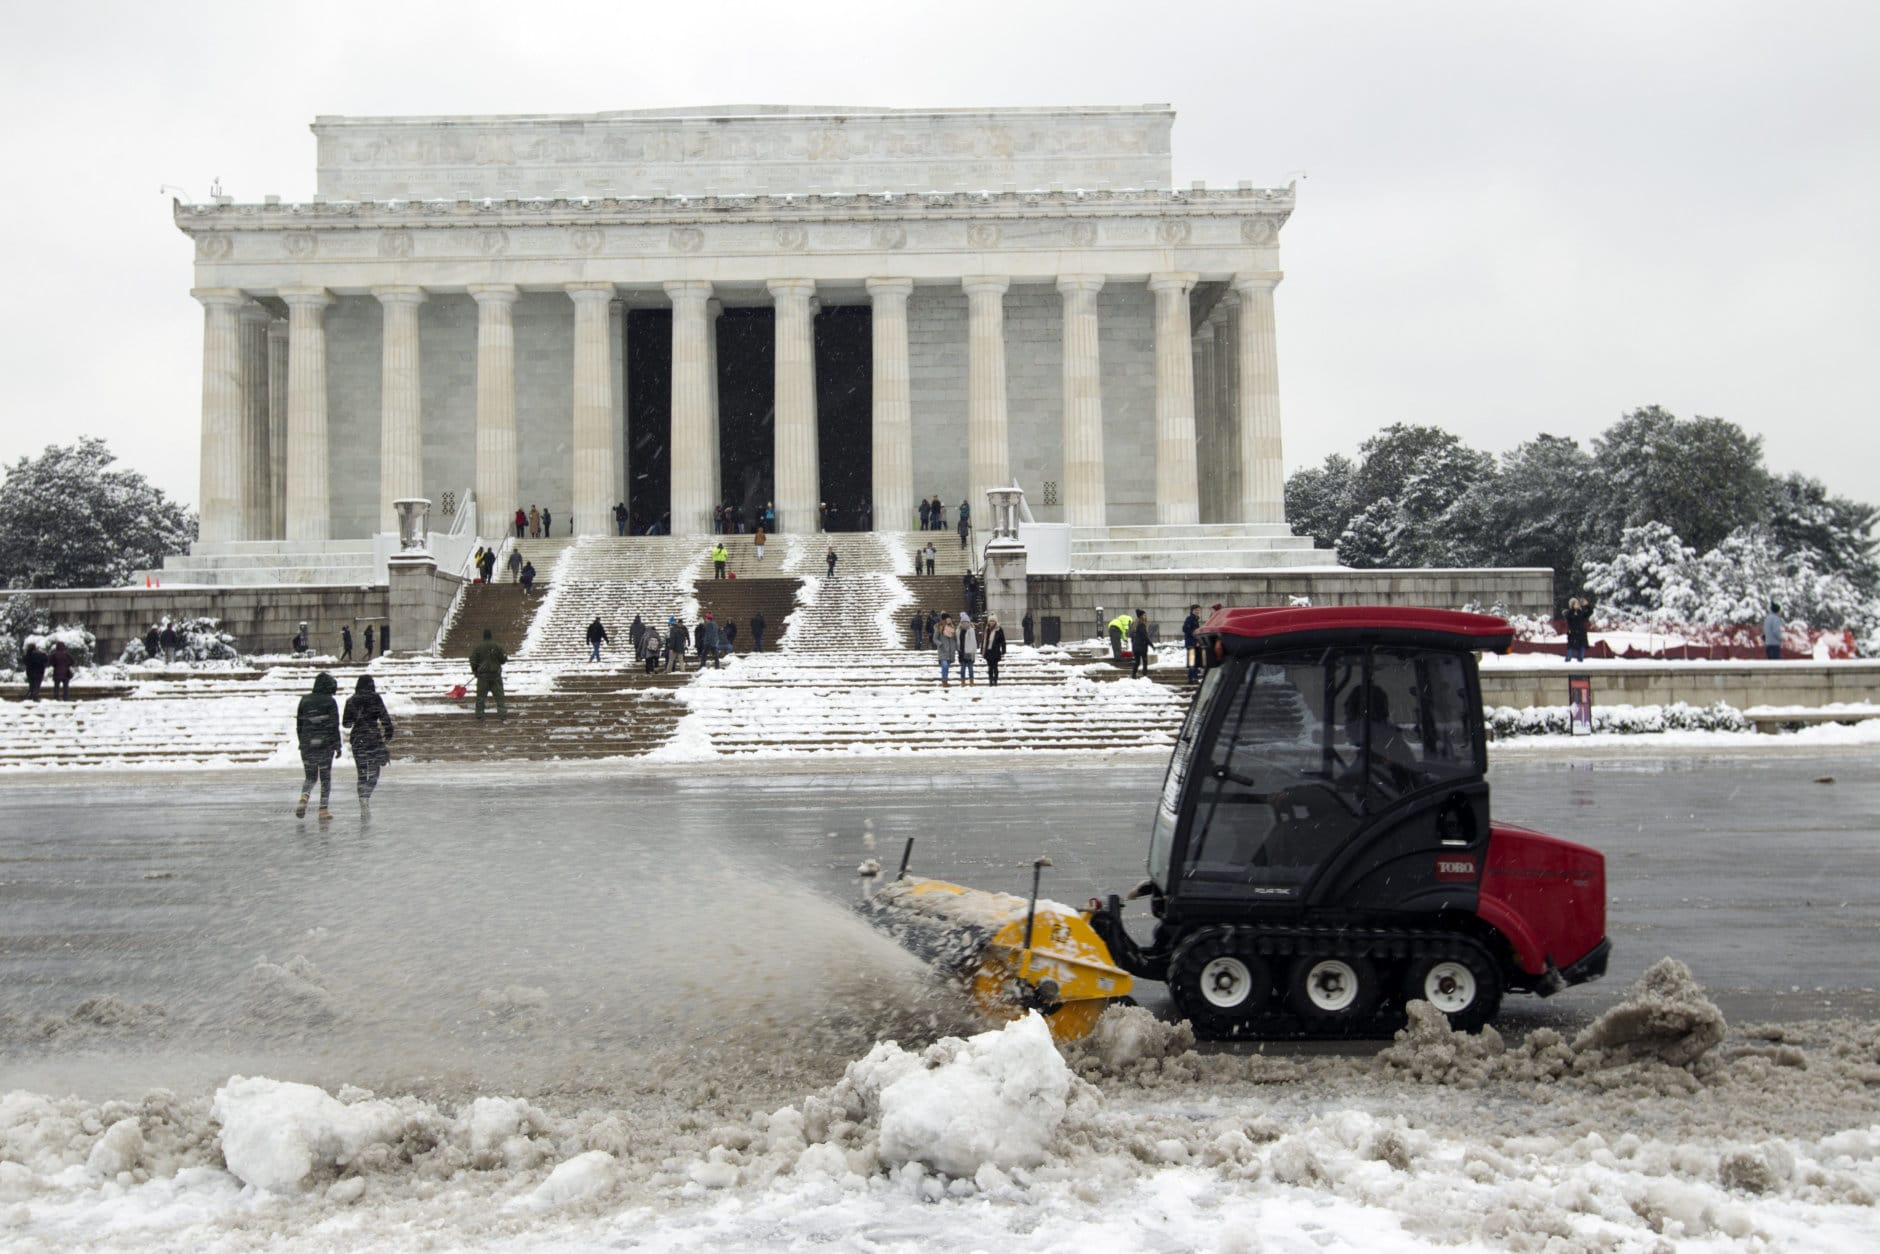 Park service workers clean the snow outside of Lincoln Memorial, during a snowstorm, as a partial government shutdown stretches into its third week at Capitol Hill in Washington Sunday, Jan. 13, 2019. With the standoff over paying for his long-promised border wall dragging on, the president's Oval Office address and visit to the Texas border over the past week failed to break the logjam and left aides and allies fearful that the president has misjudged Democratic resolve and is running out of negotiating options. (AP Photo/Jose Luis Magana)